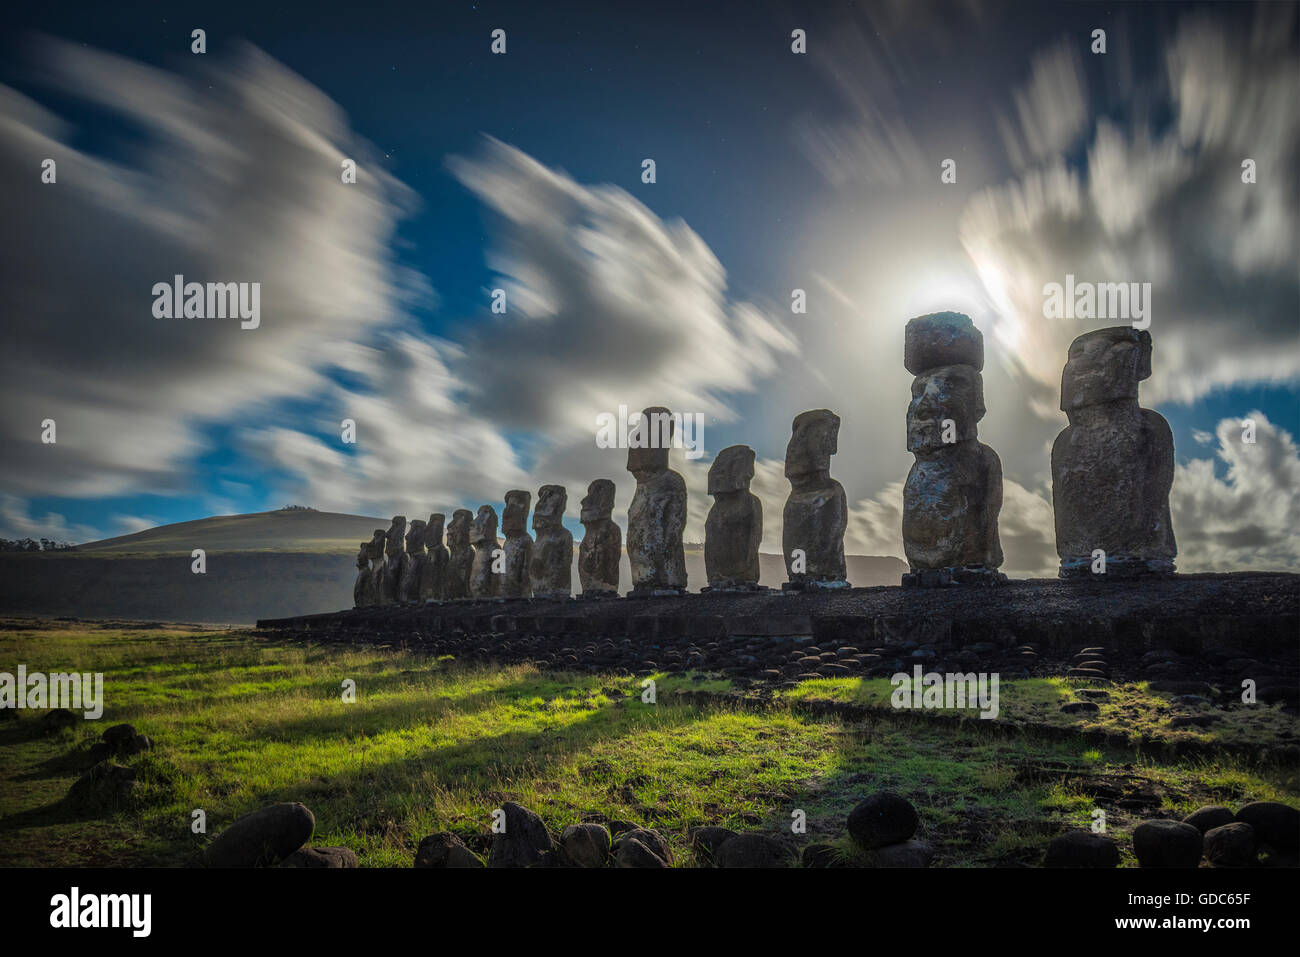 South America,Chile,Easter Island,Rapa Nui,south pacific,UNESCO,World Heritage, - Stock Image